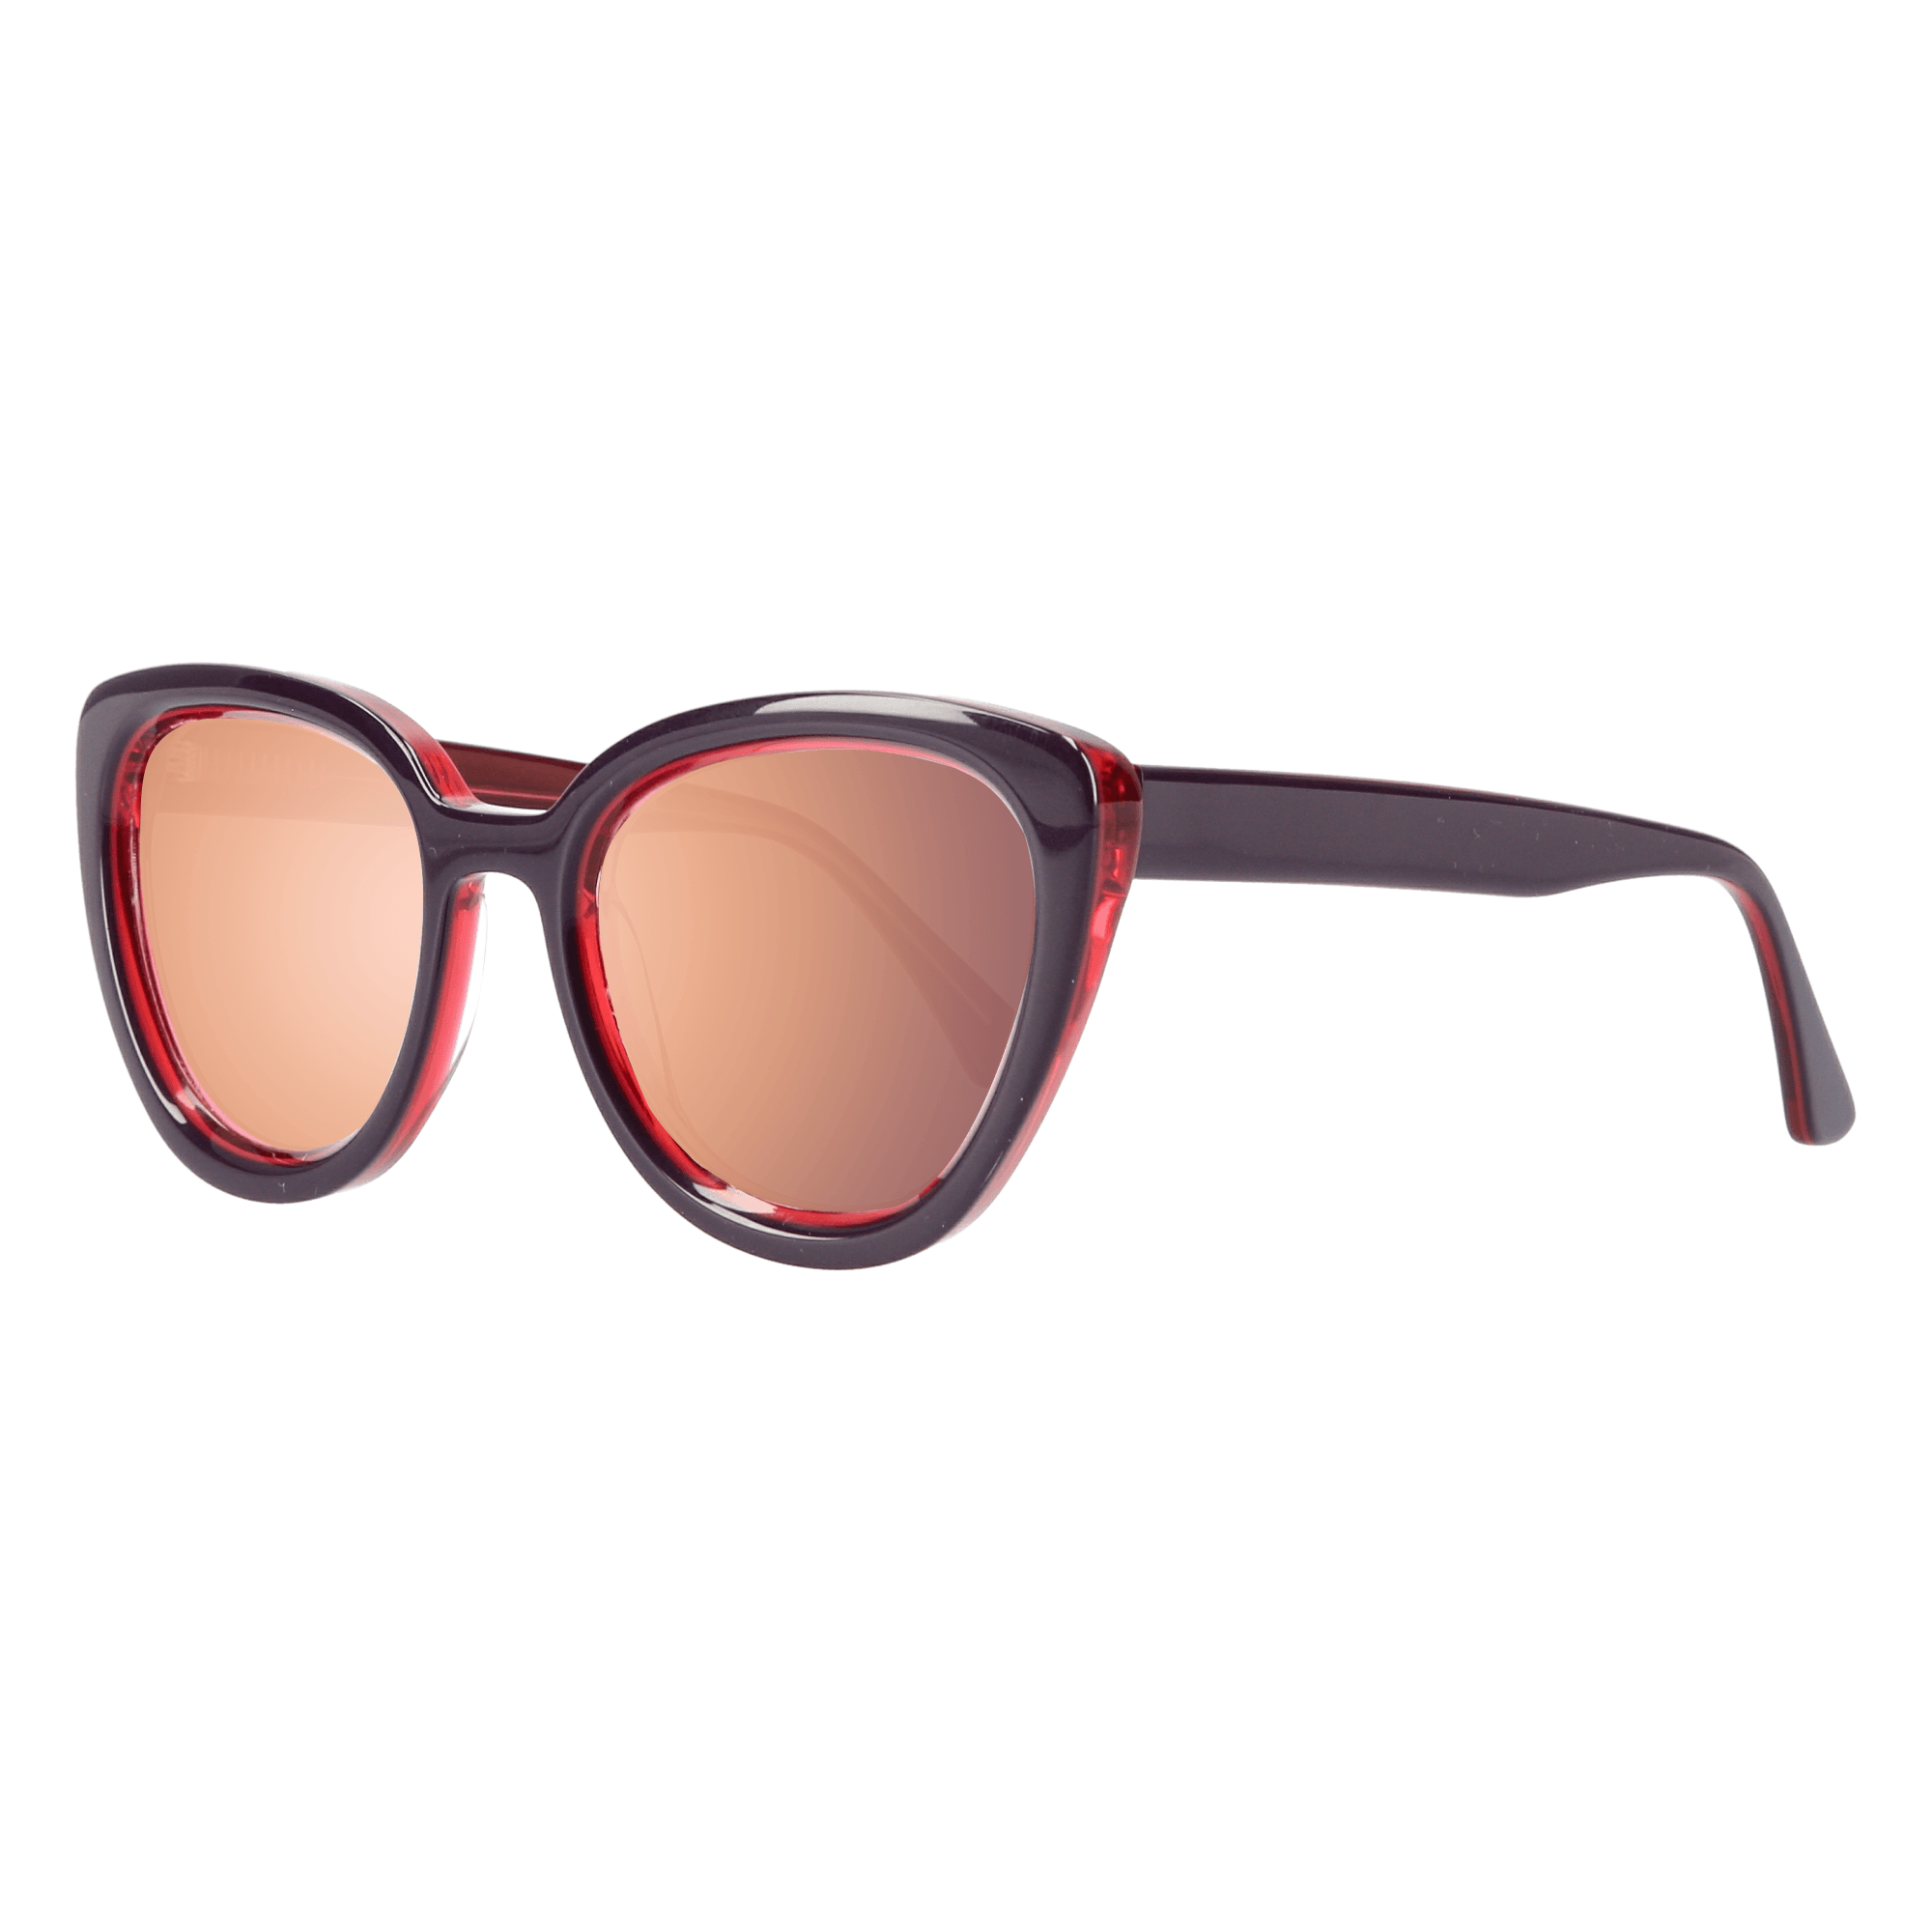 LA'JEAN - PURPLE-PINK SUNGLASSES SAINT REETS